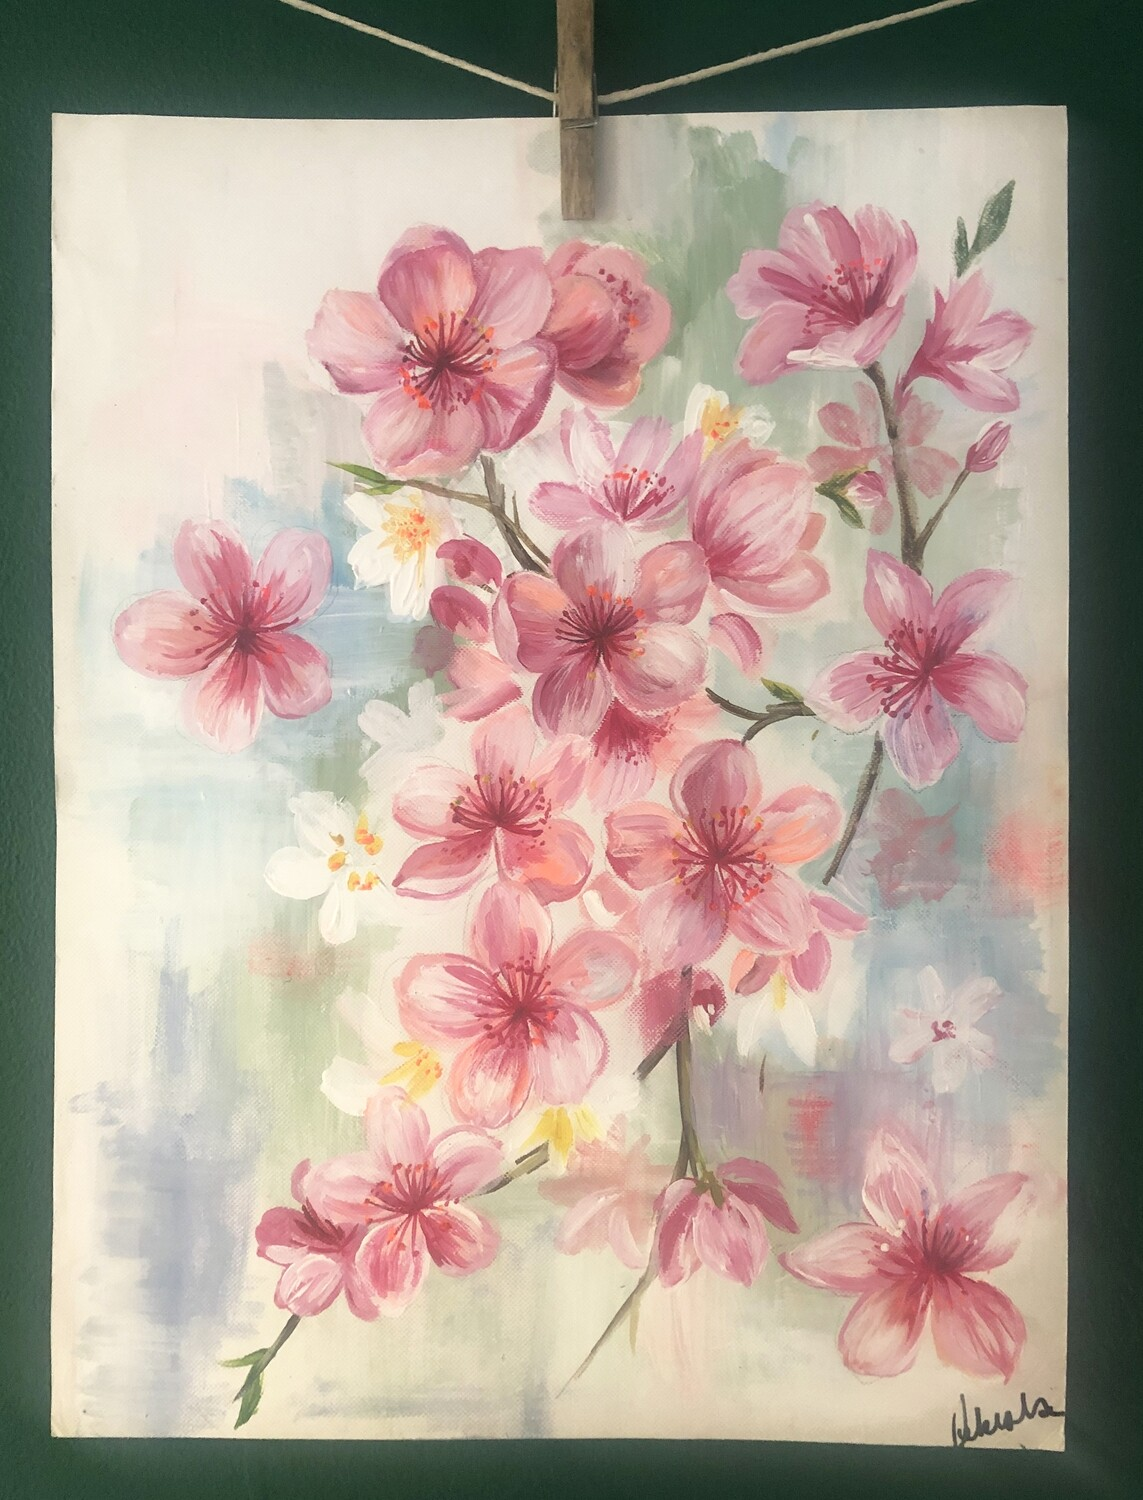 Original Cherry blossom painting by Victoria Sanders